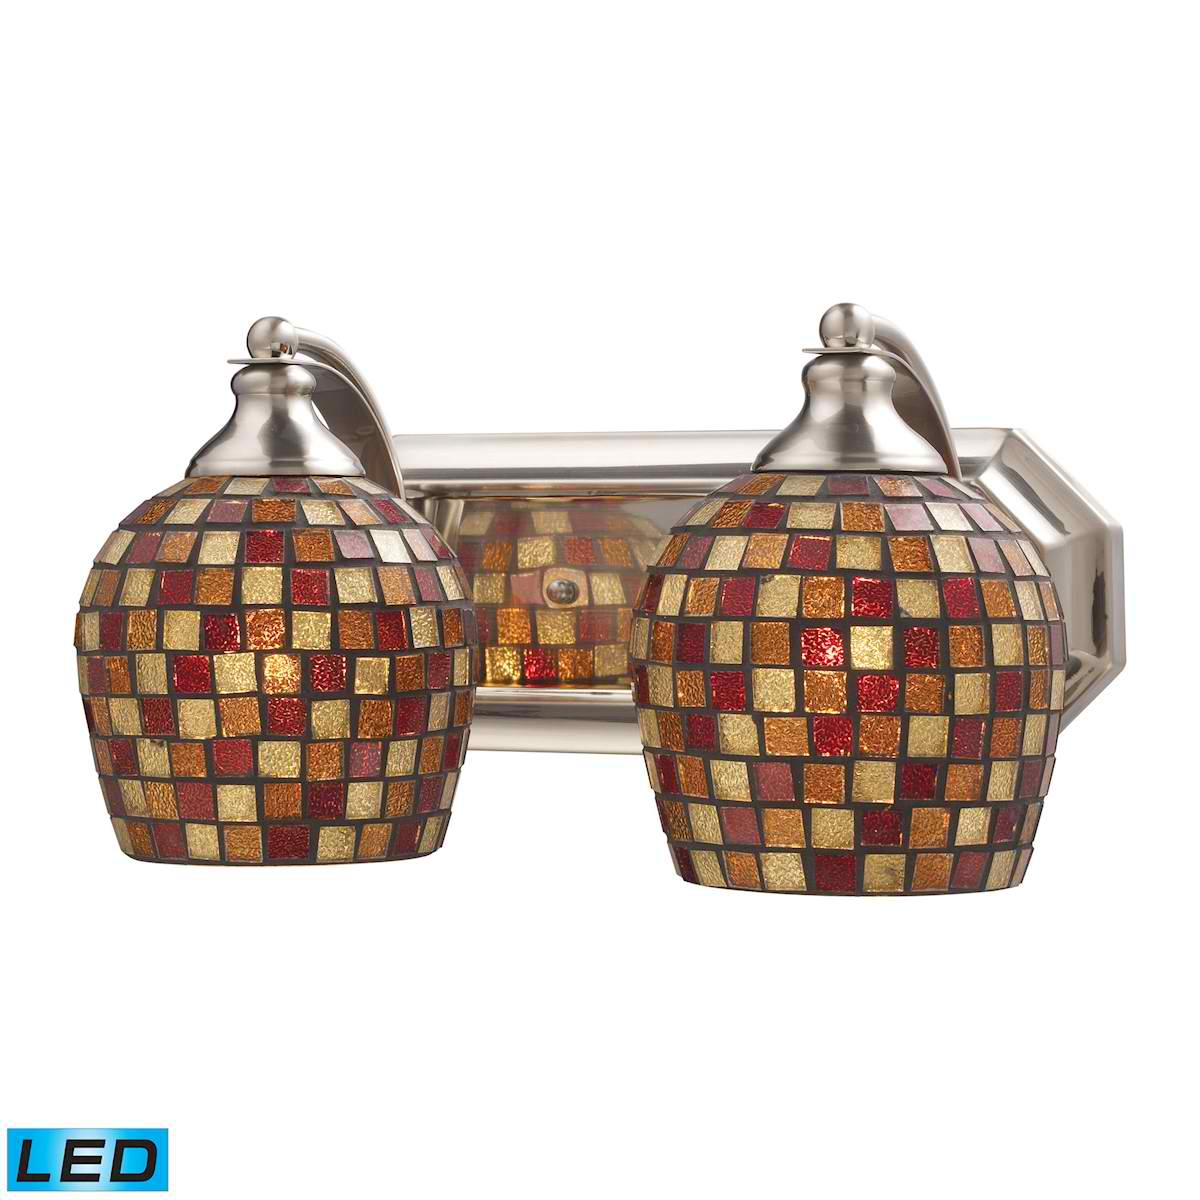 2 Light Vanity in Satin Nickel and Multi Mosaic Glass - LED, 800 Lumens (1600 Lumens Total) with Full Scale